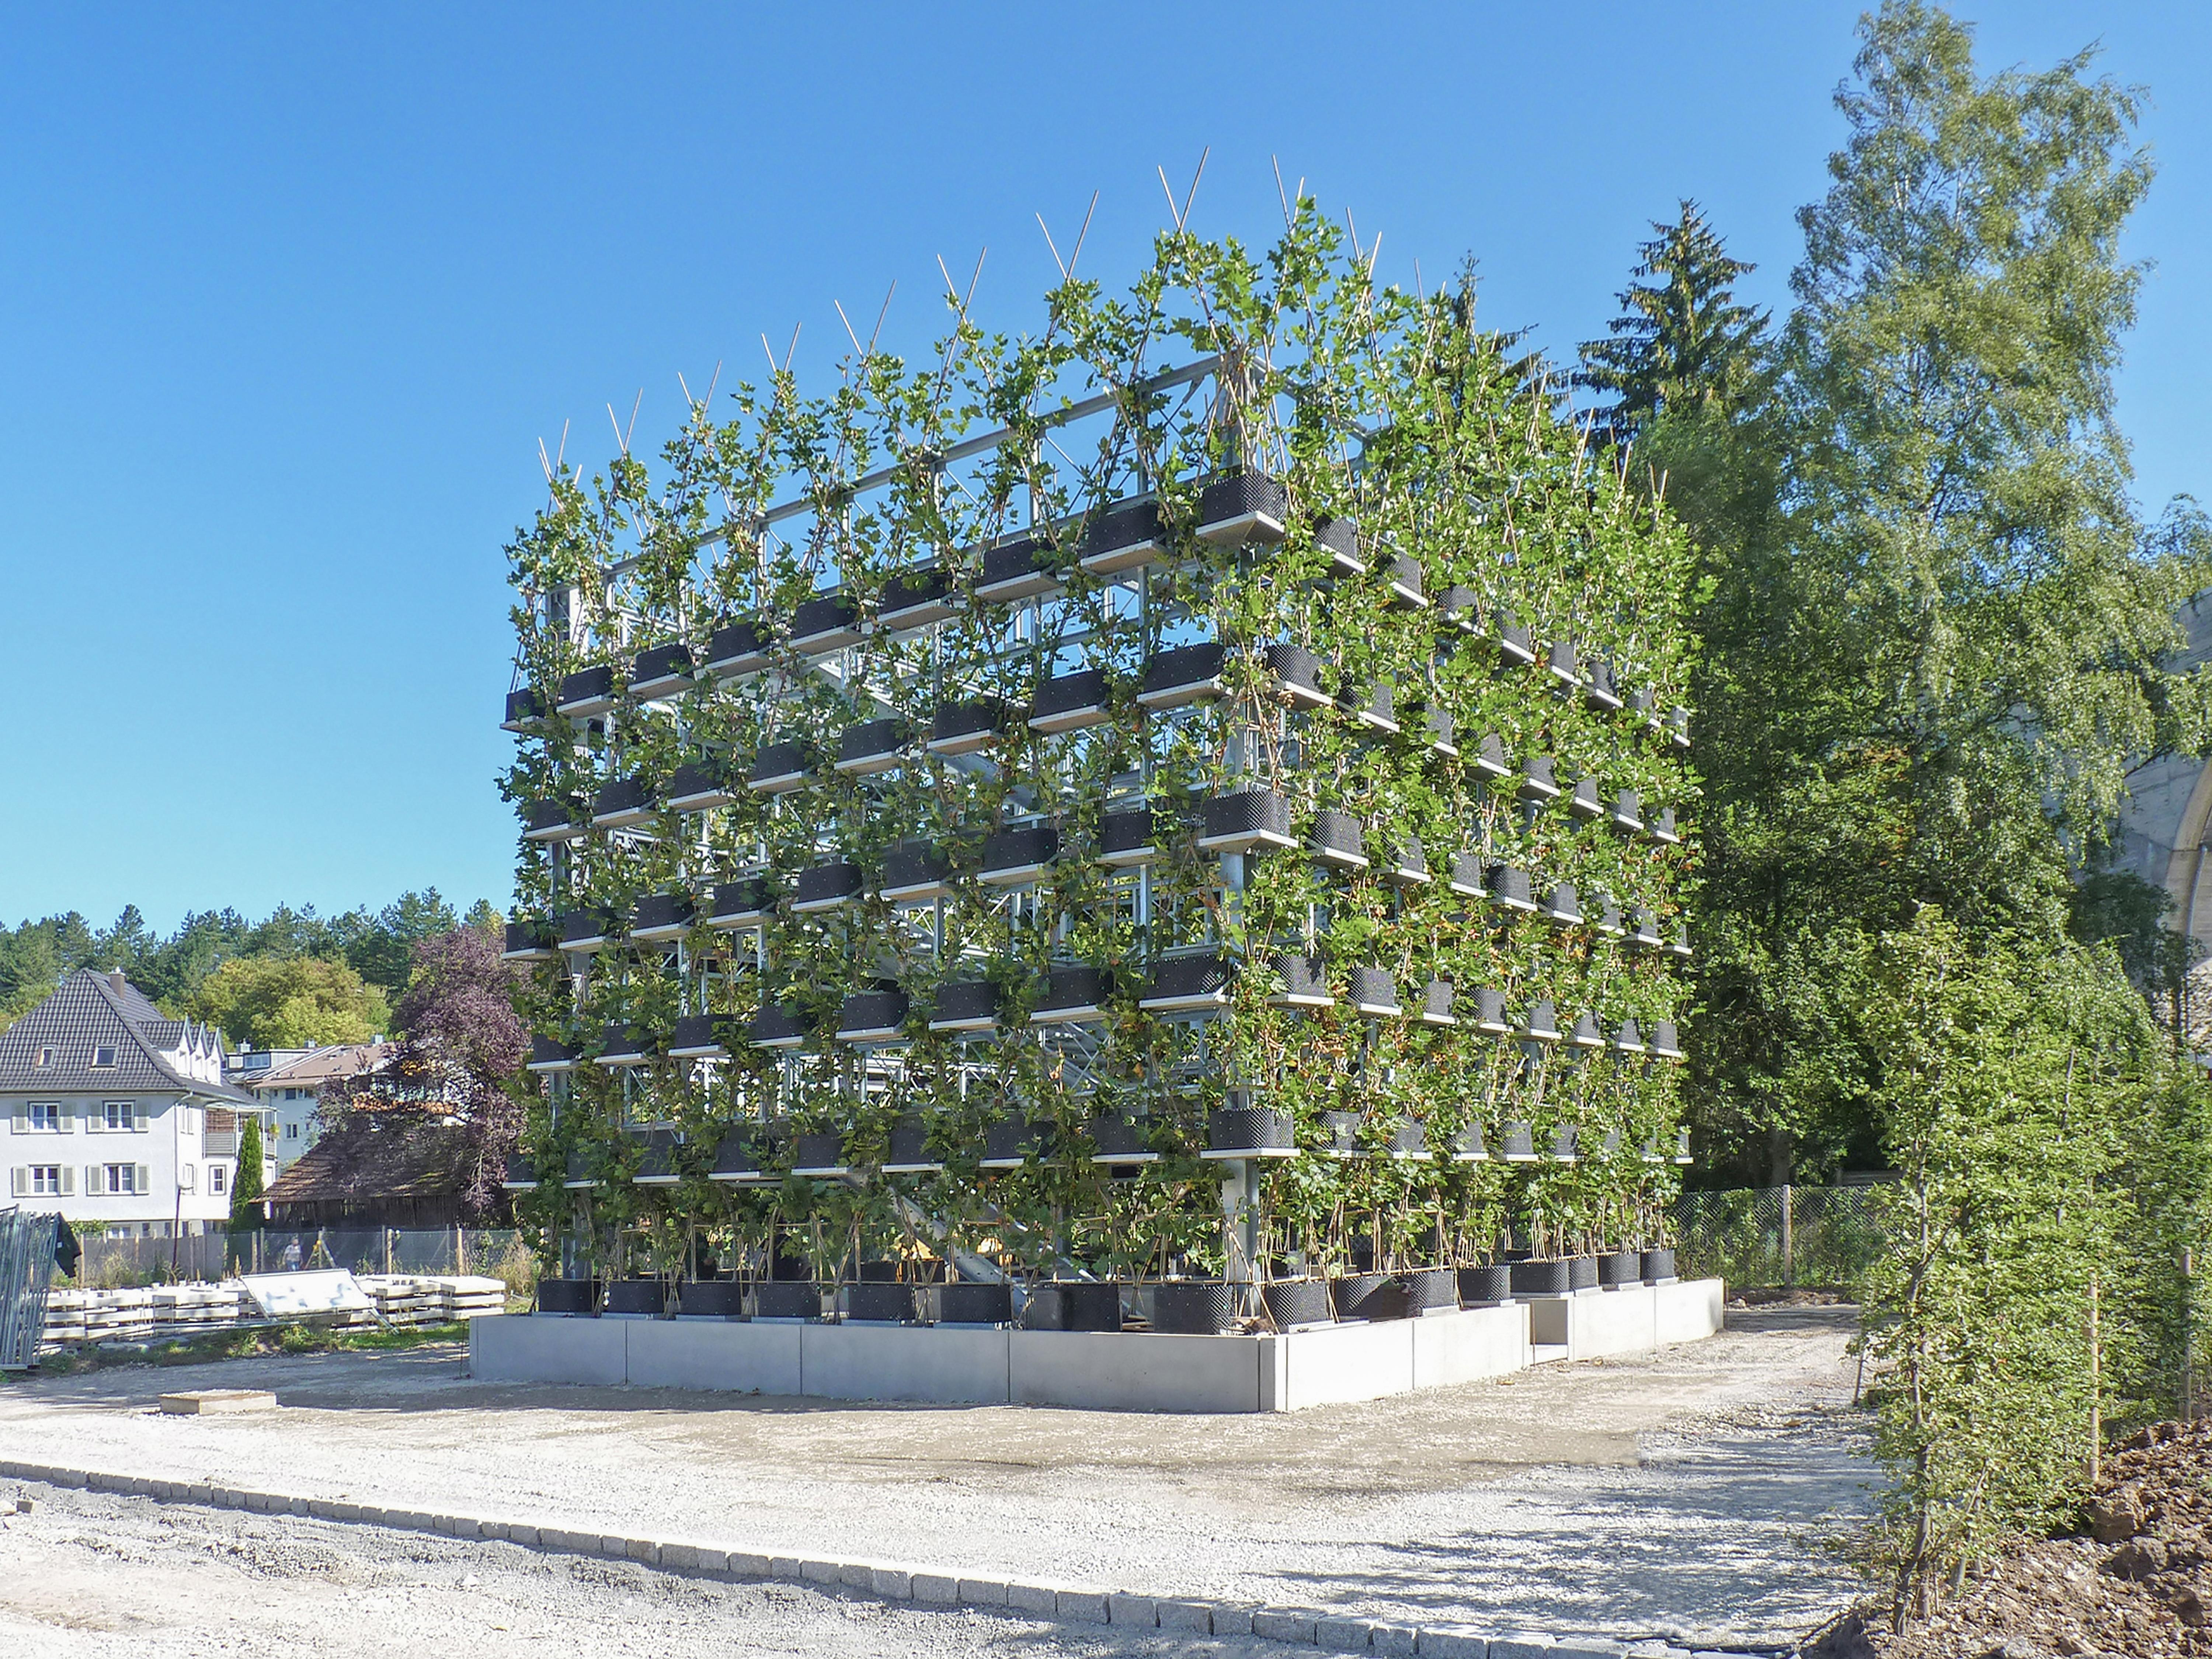 A Baubotanik building has already been implemented in Nagold in southwest Germany: The building appears less as a building than as a tree due to the plane tree façade. It is perceived as a break in the urban space.